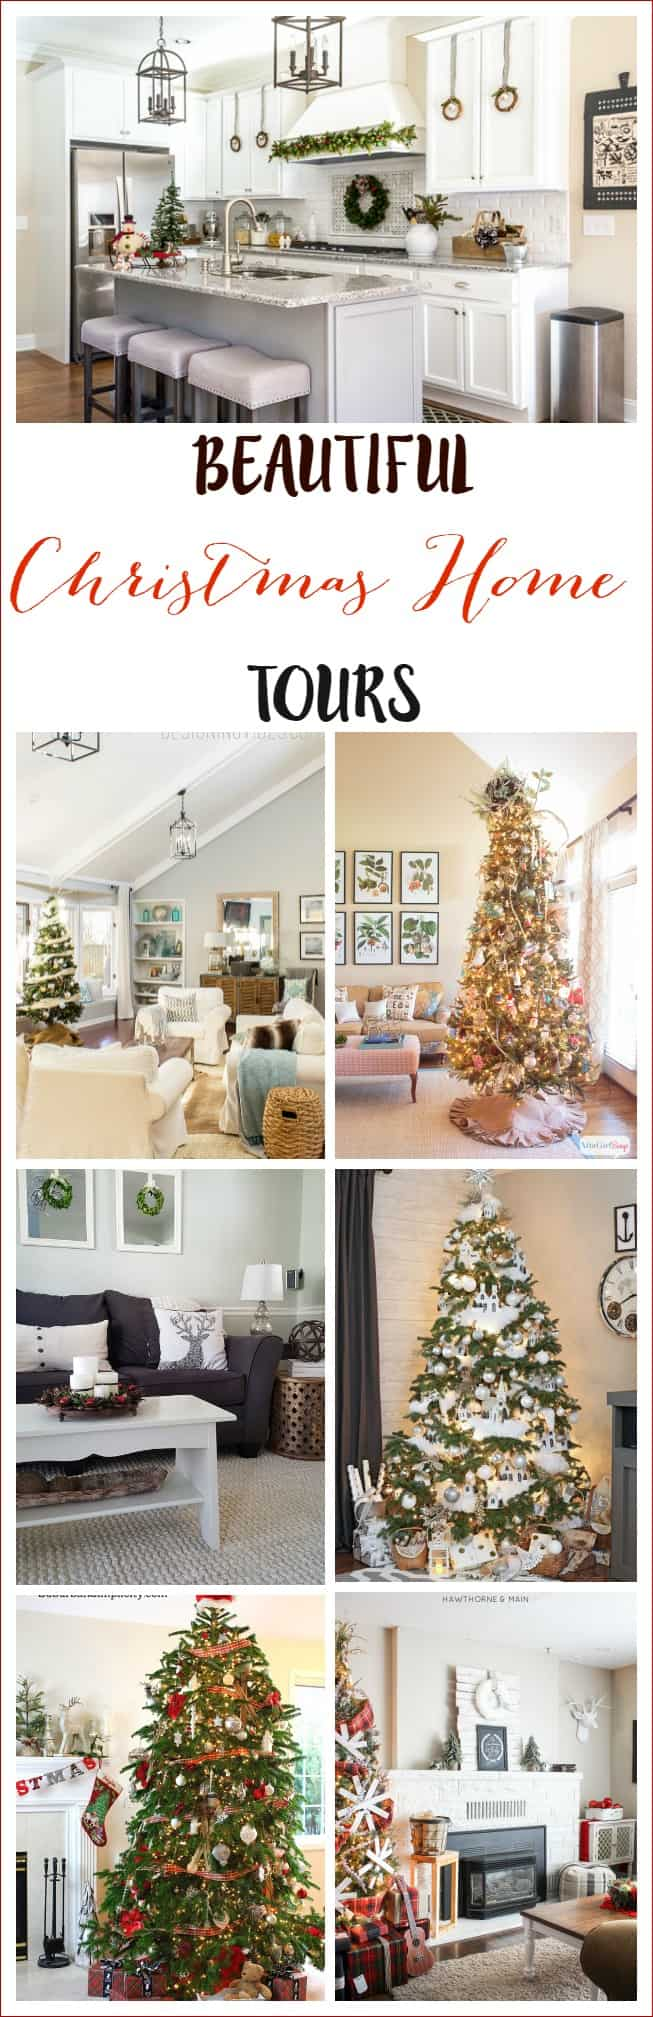 Beautiful Christhmas HOme tours